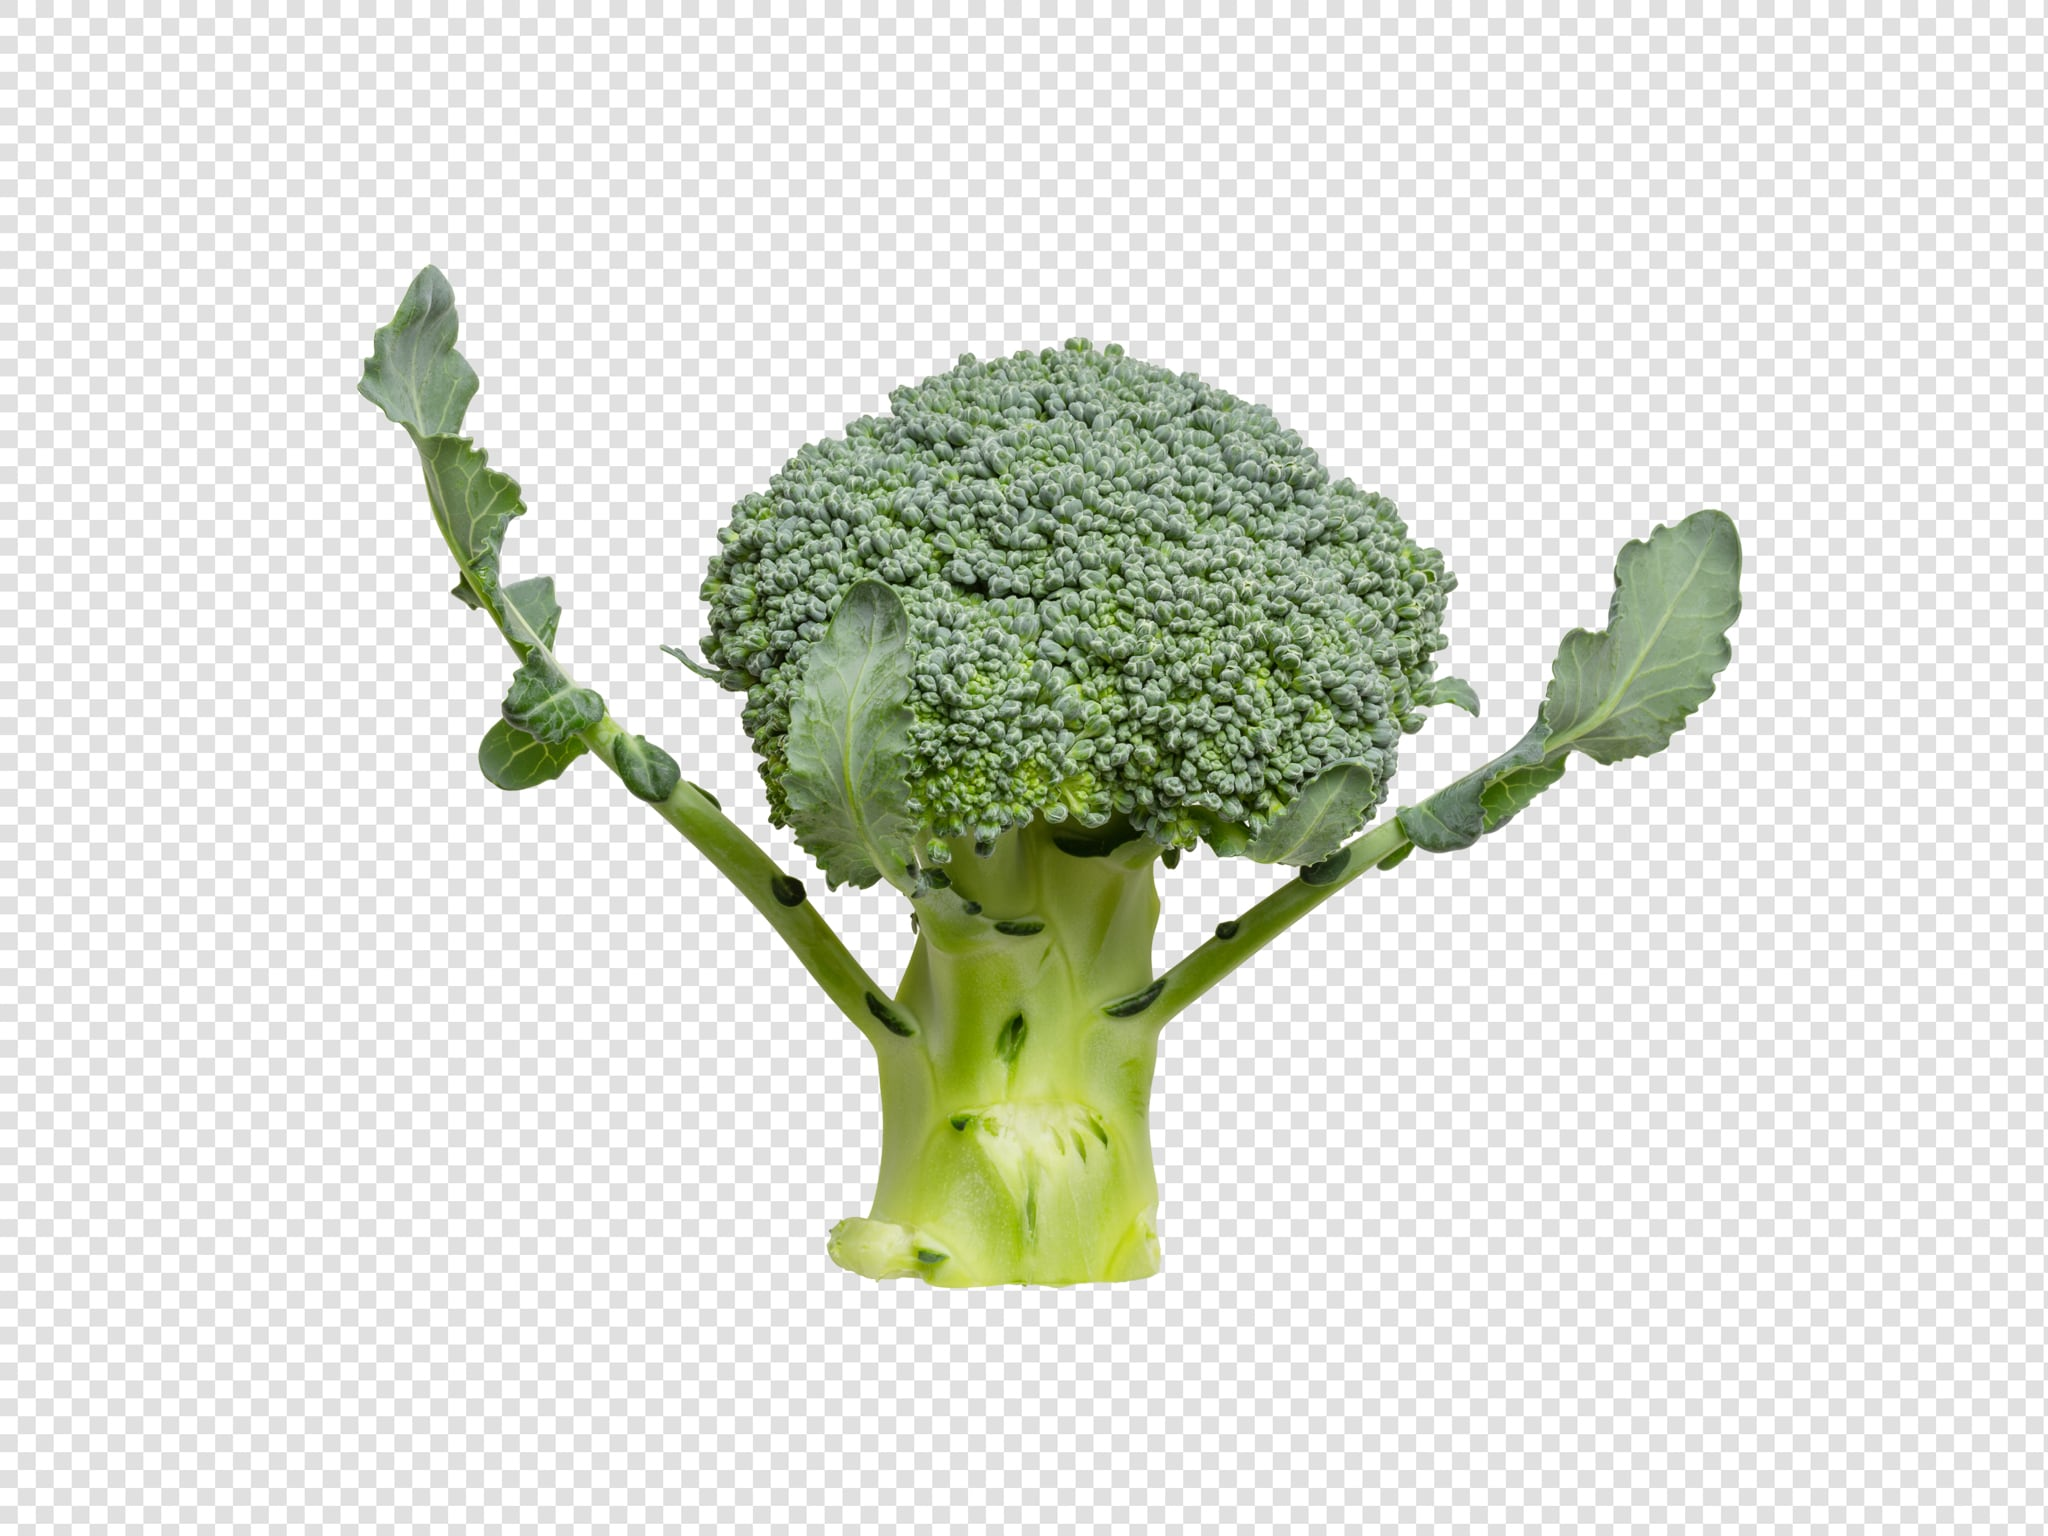 Isolated Broccoli psd image